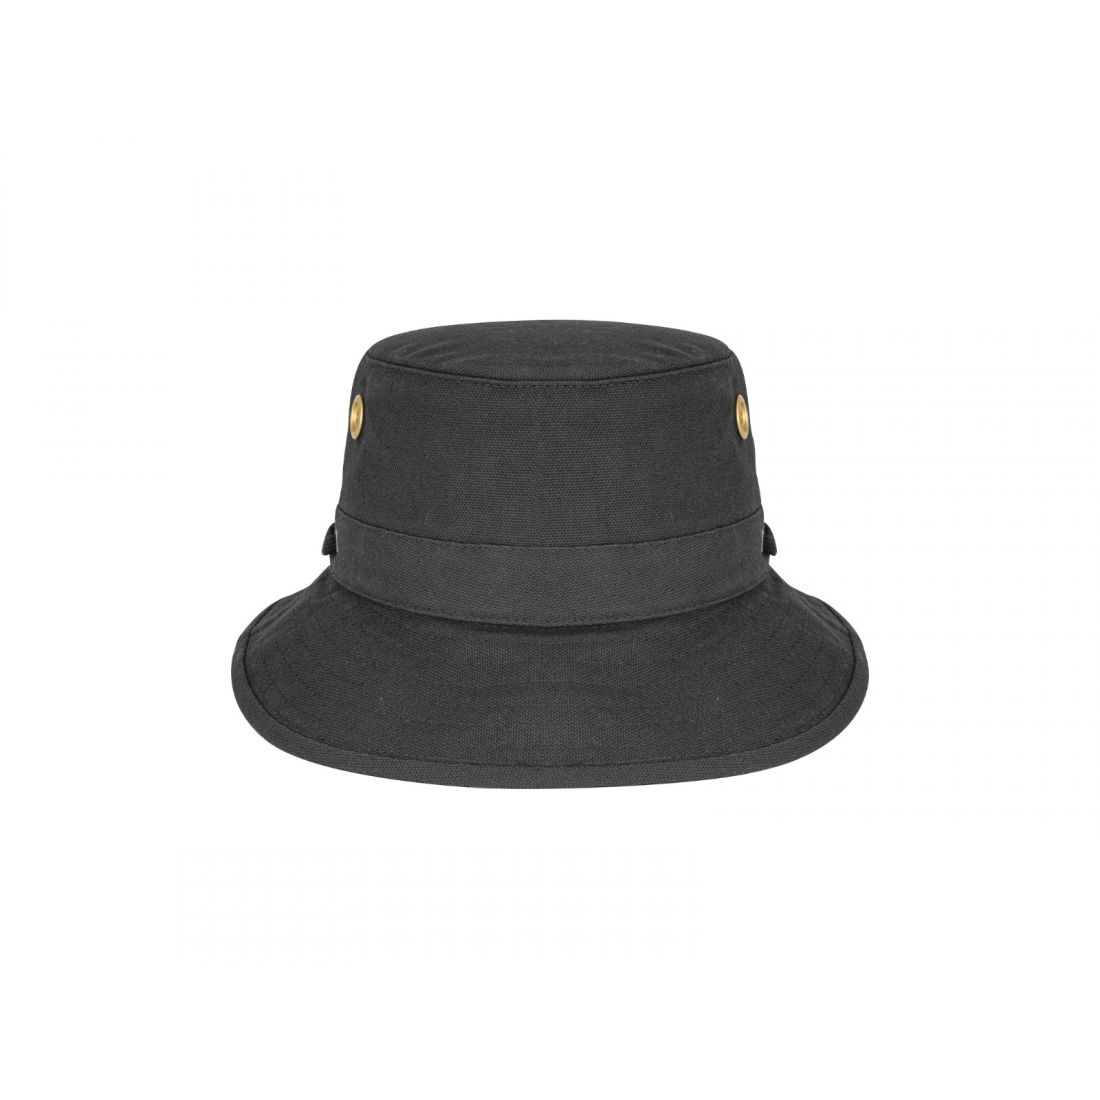 Tilley Bucket Hat - Black